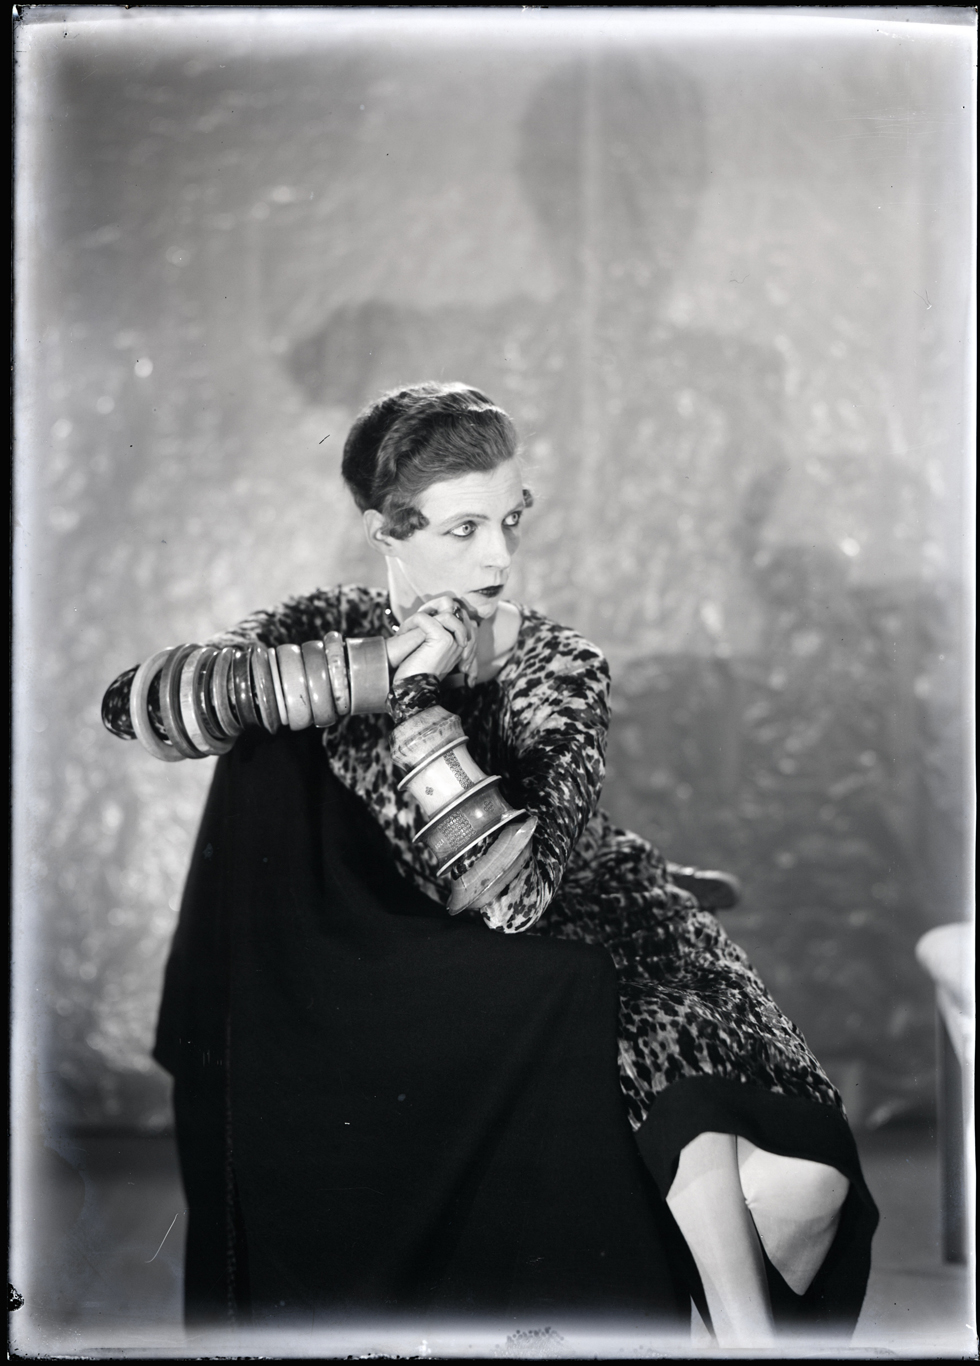 The iconic portrait of Nancy Cunard, 1925, photographed by Man Ray © Man Ray Trust - Adagp, Paris 2013 © Centre Pompidou